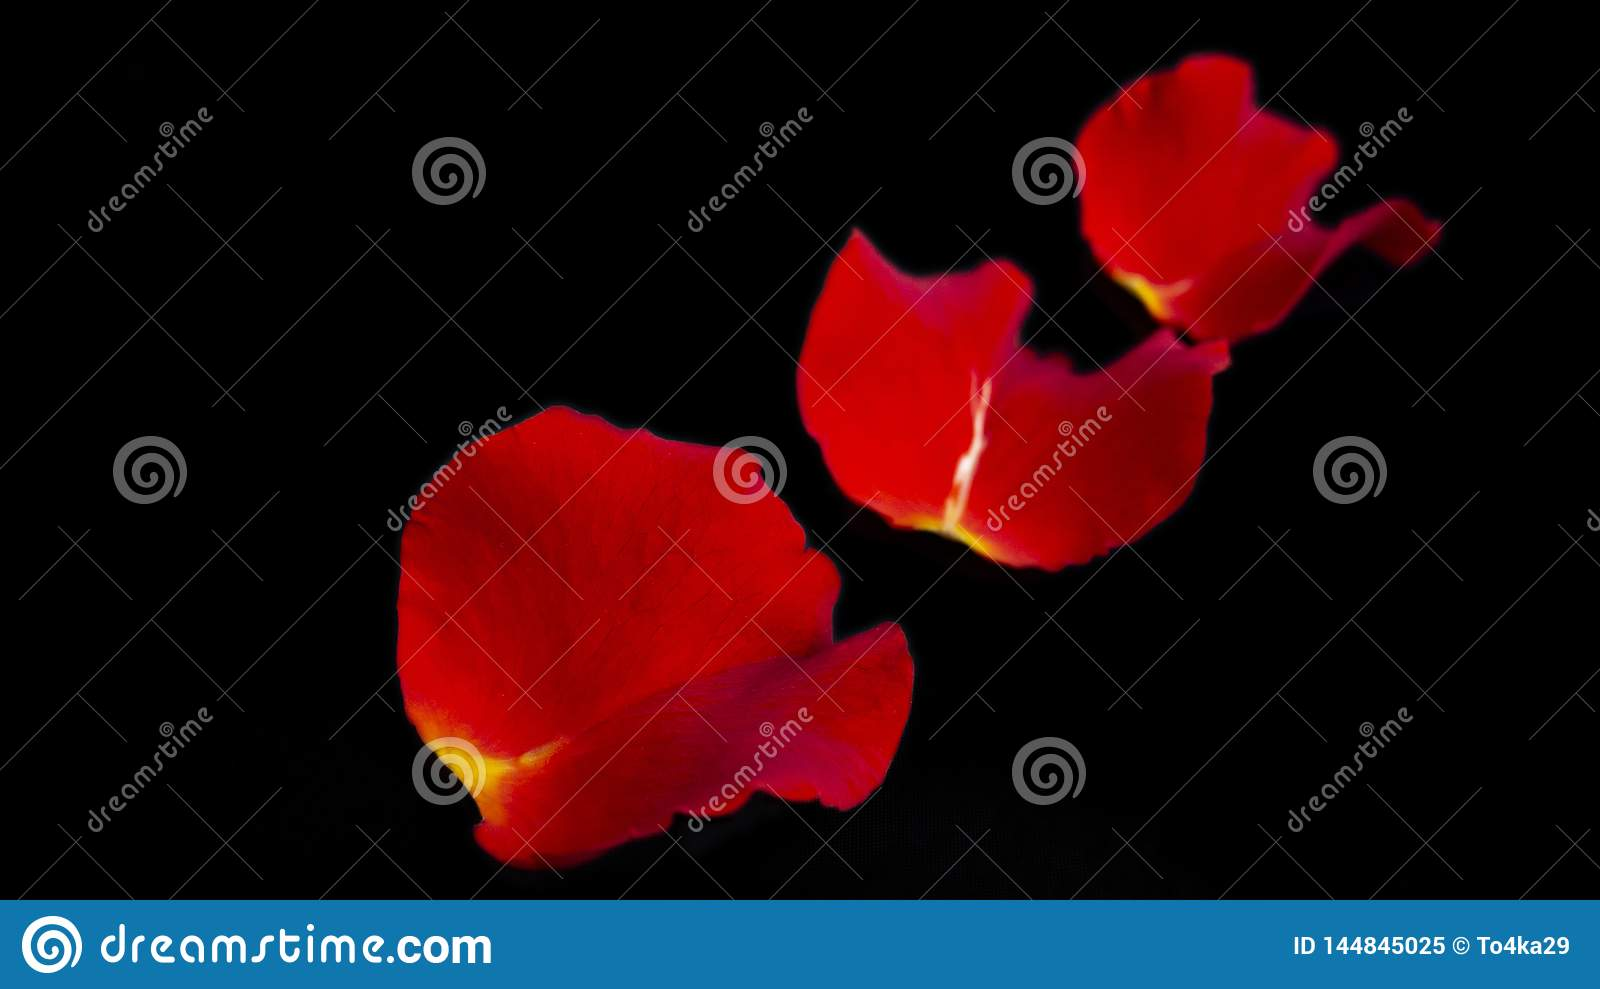 Red rose petals on black background. Isolated on black